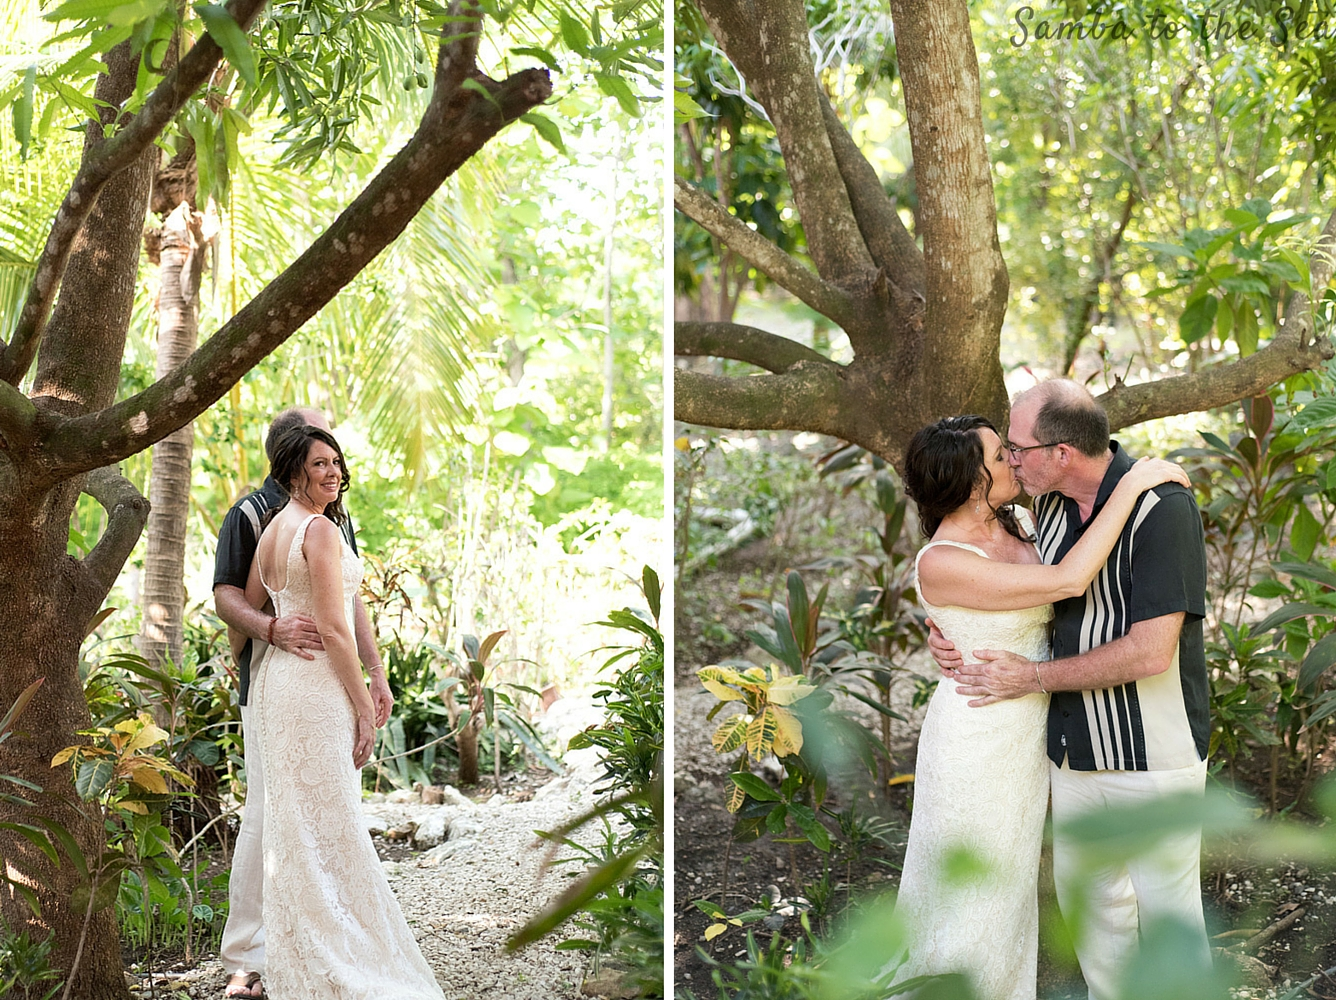 Bride and groom kissing at Teak Pacific Hotel in Nosara, Costa Rica. Photographed by Kristen M. Brown, Samba to the Sea Photography.